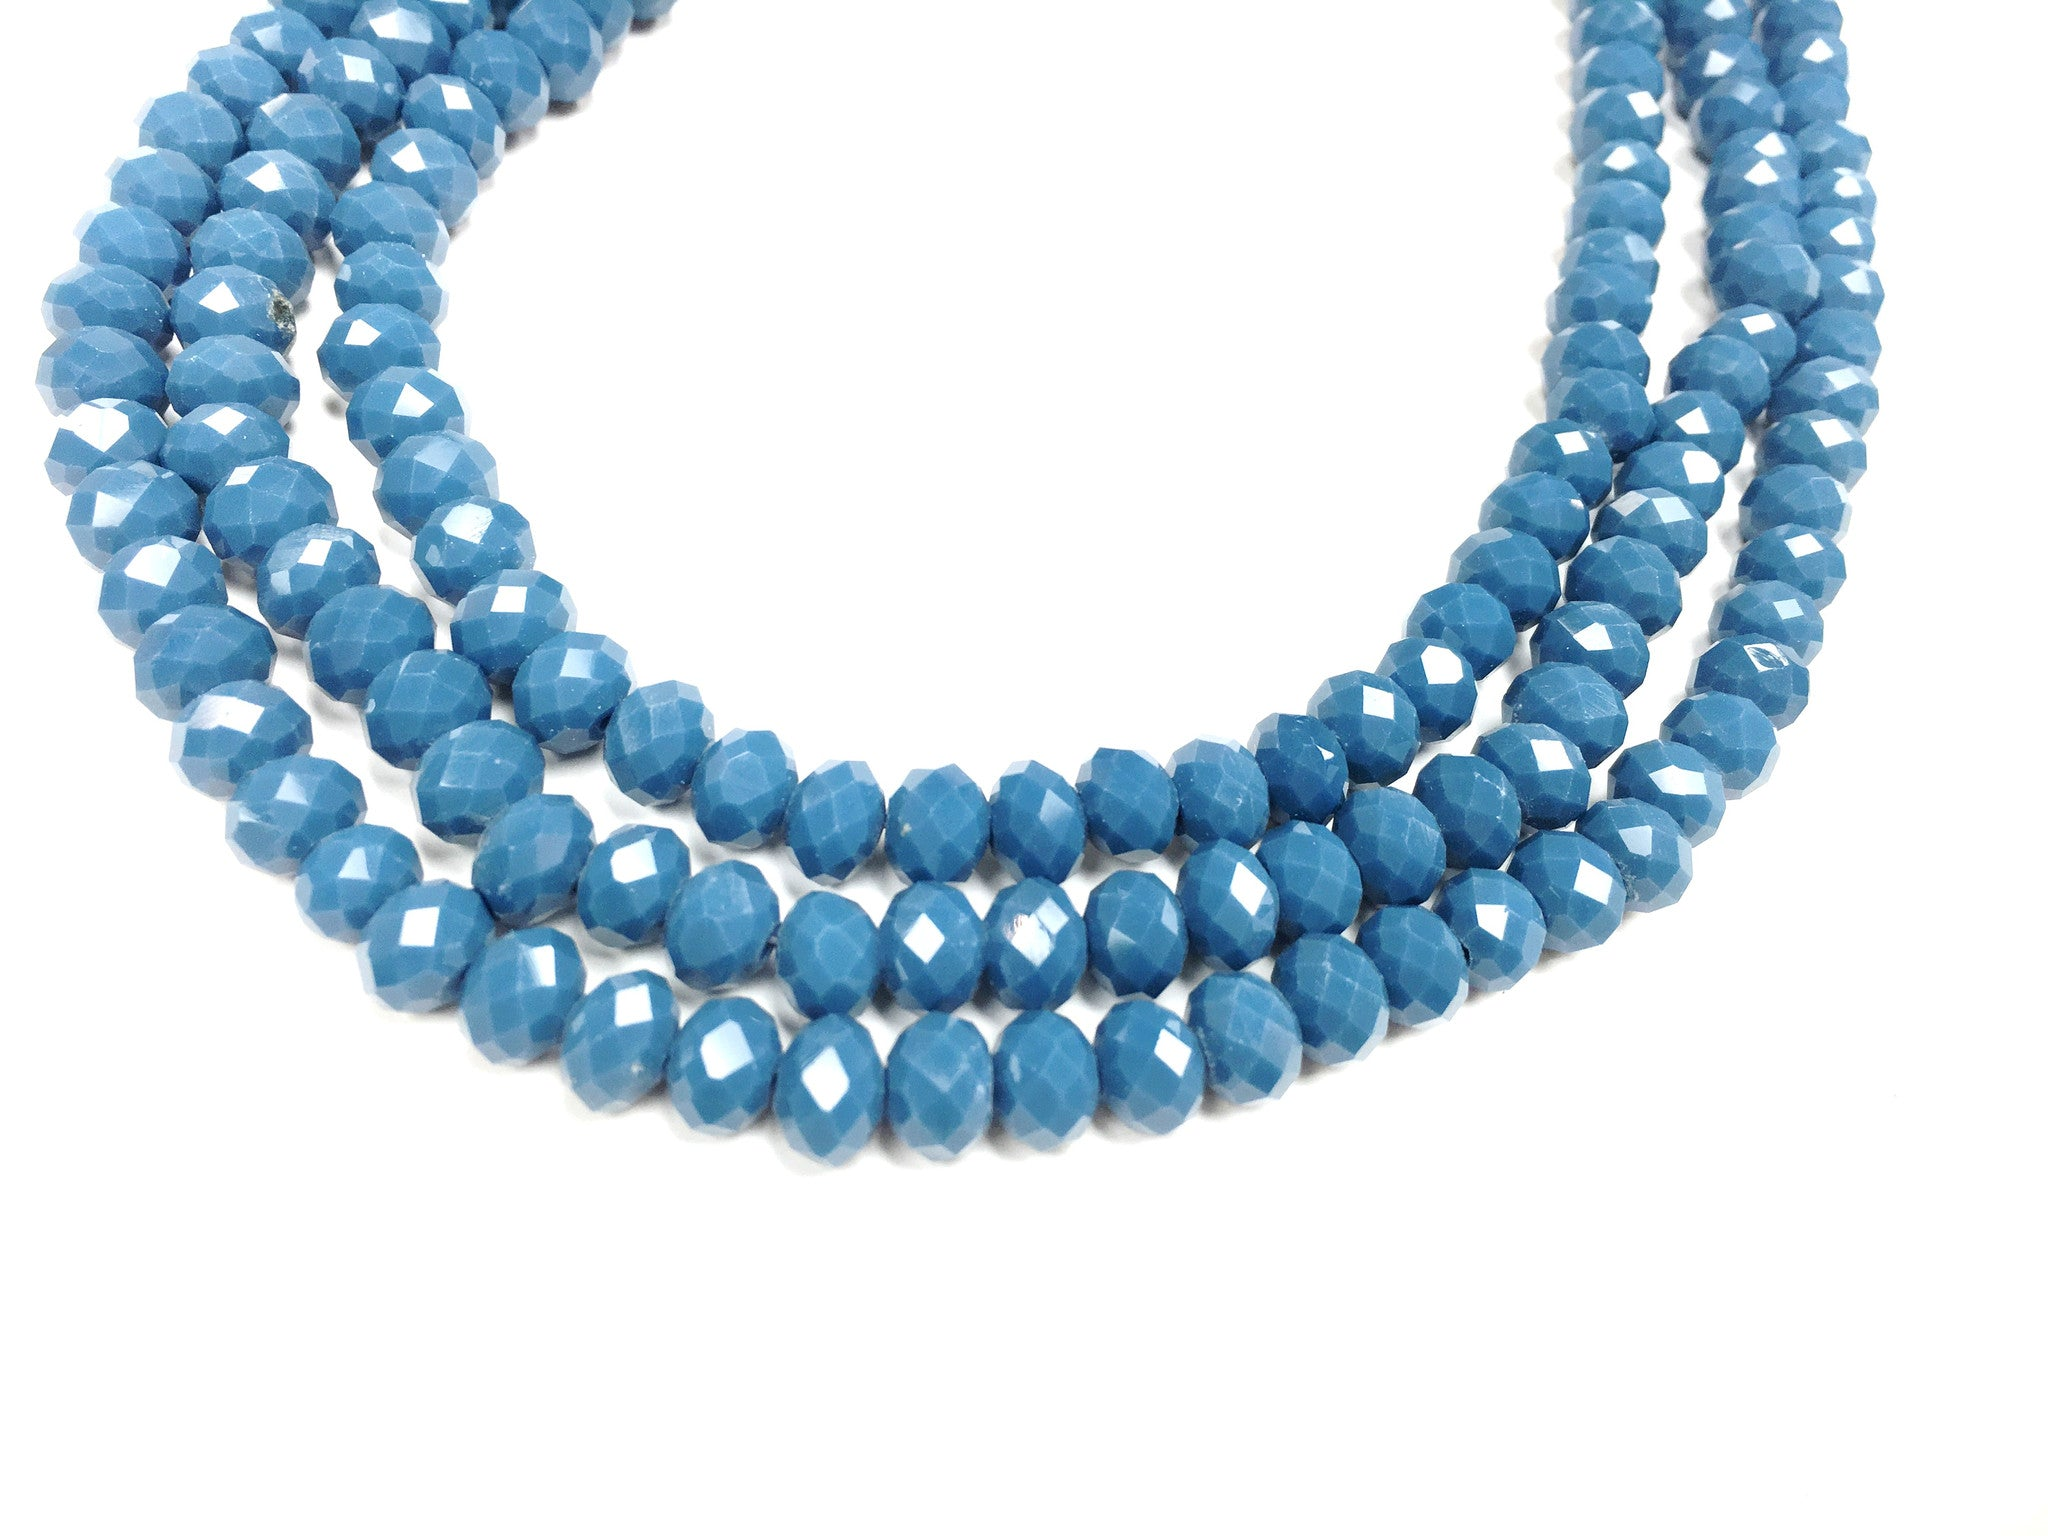 A&SB Crystal Rondells - 6x8mm Opaque Lake Blue Faceted Rondelle Beads - 16 inch strand